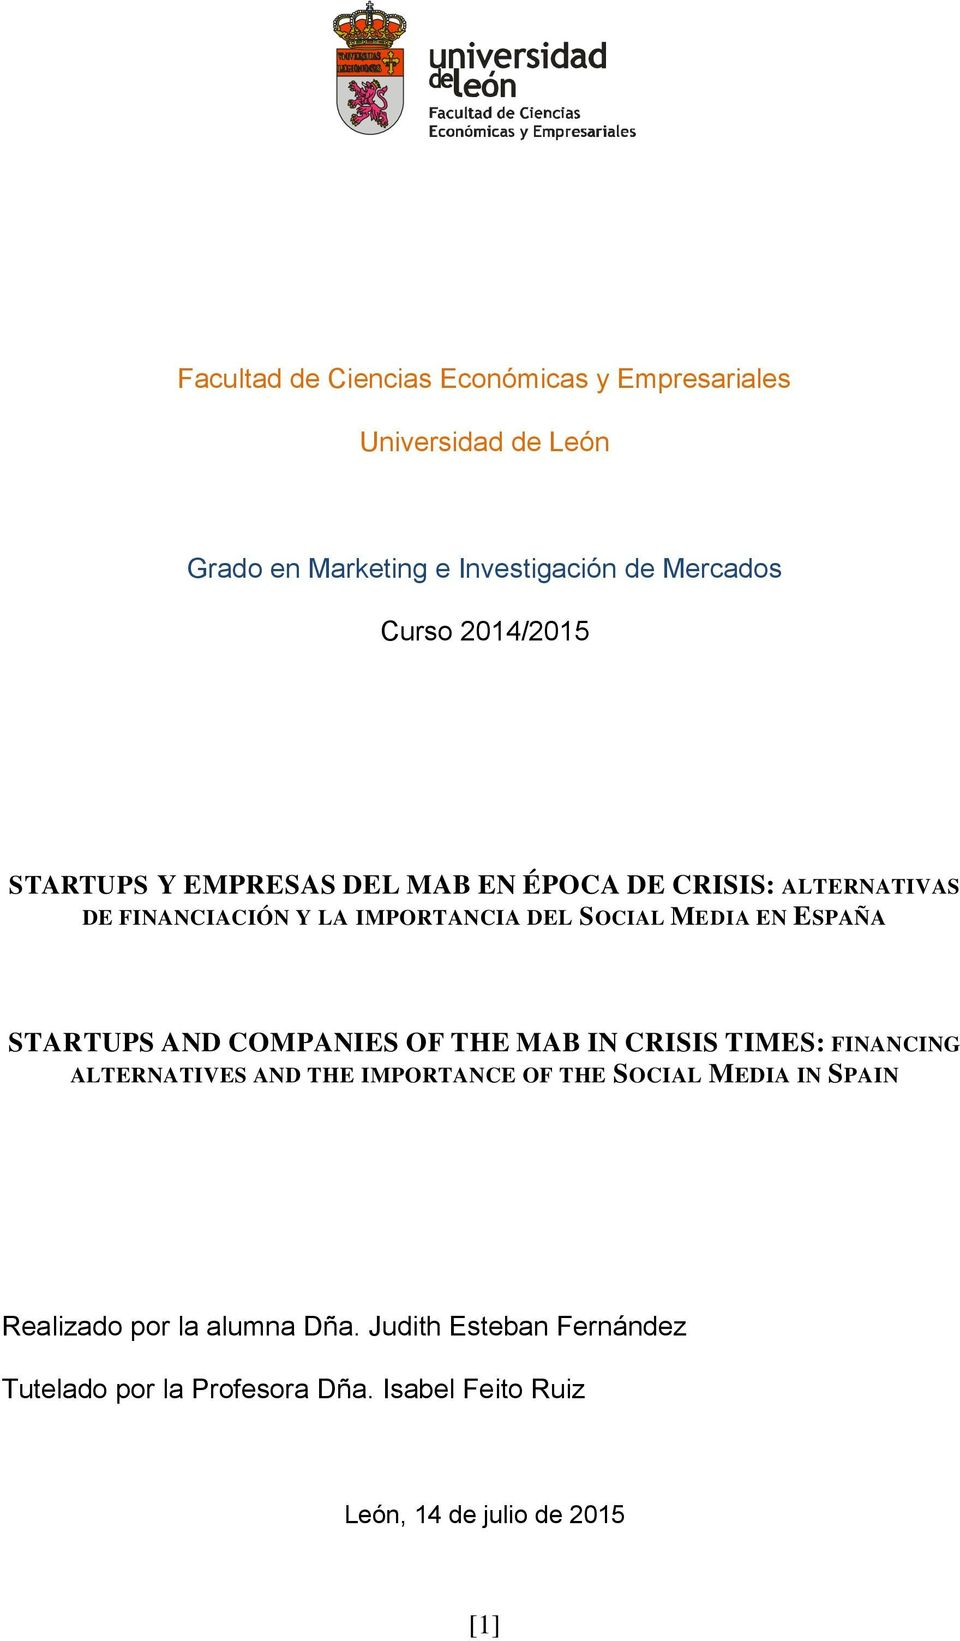 ESPAÑA STARTUPS AND COMPANIES OF THE MAB IN CRISIS TIMES: FINANCING ALTERNATIVES AND THE IMPORTANCE OF THE SOCIAL MEDIA IN